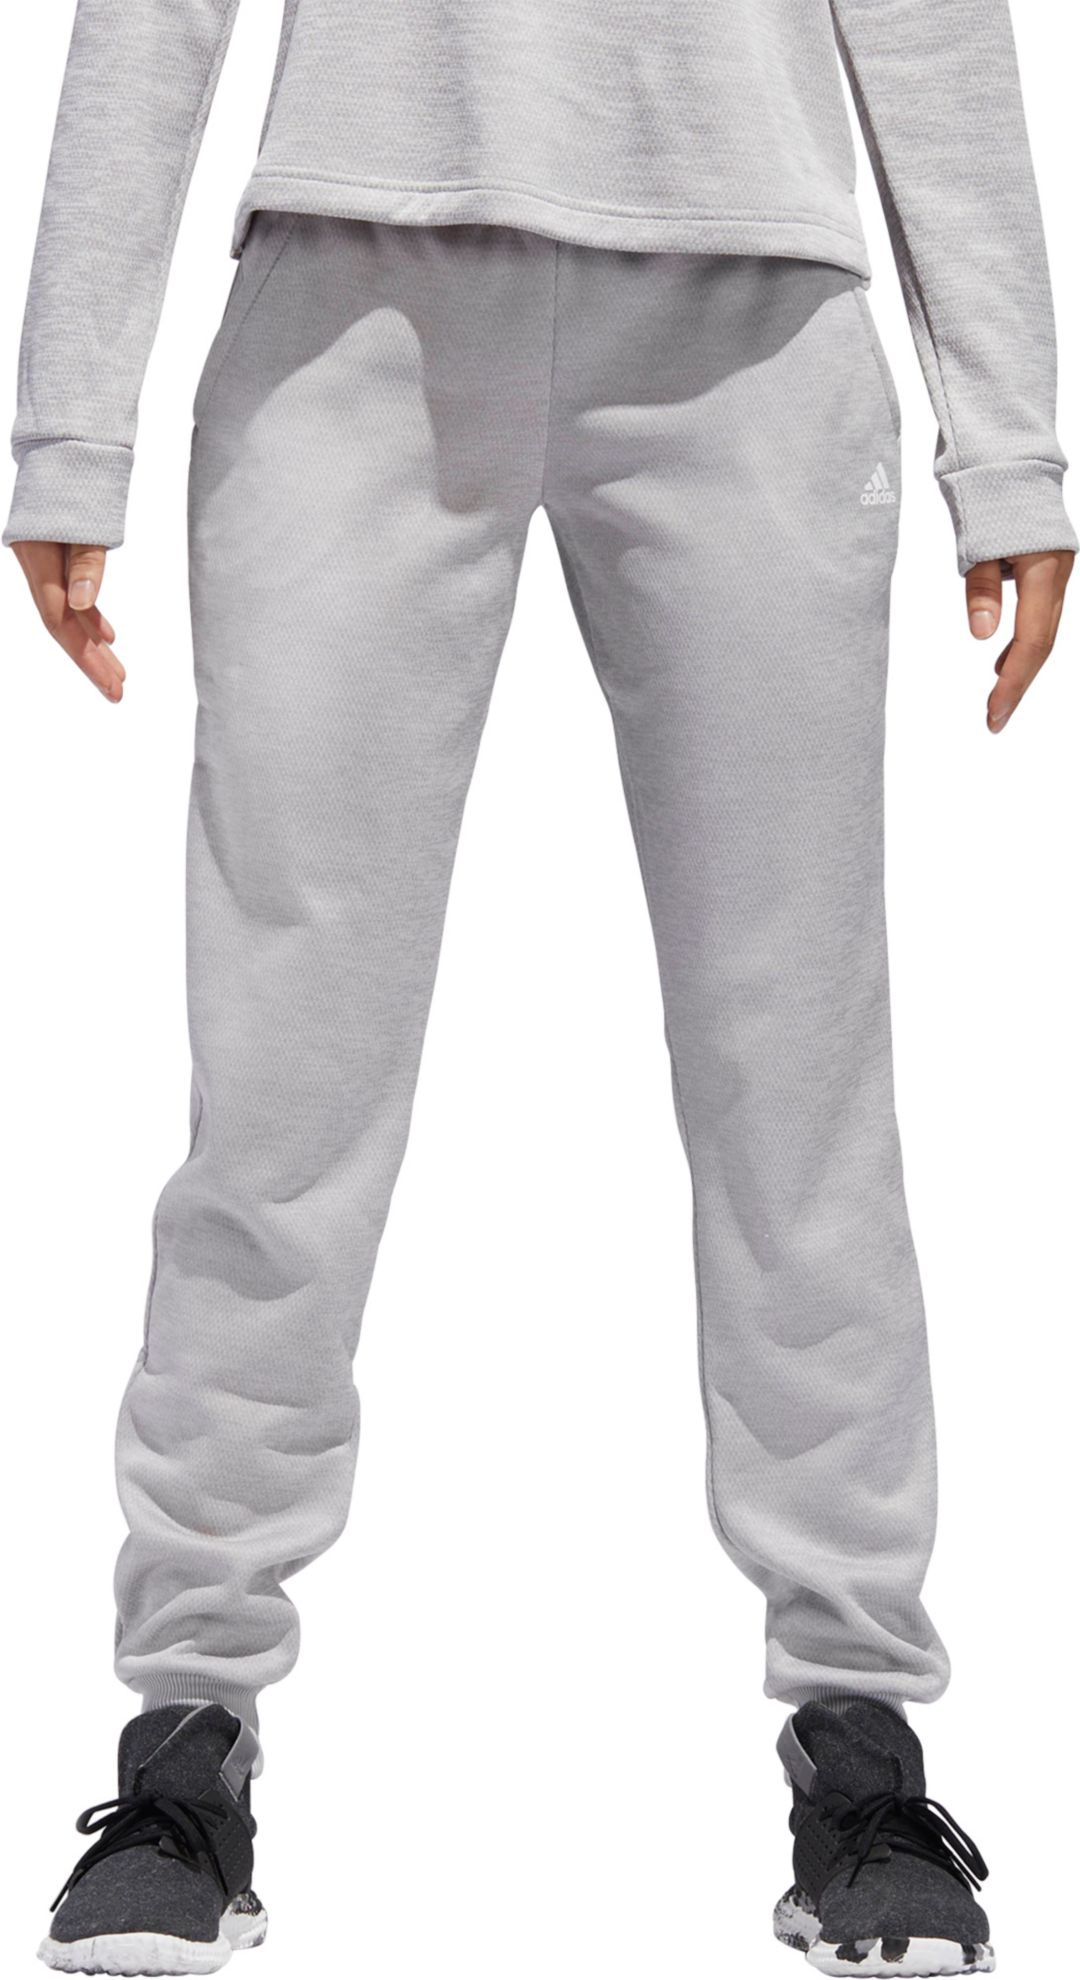 e88580e2a adidas Women's Team Issue Jogger Pants | DICK'S Sporting Goods